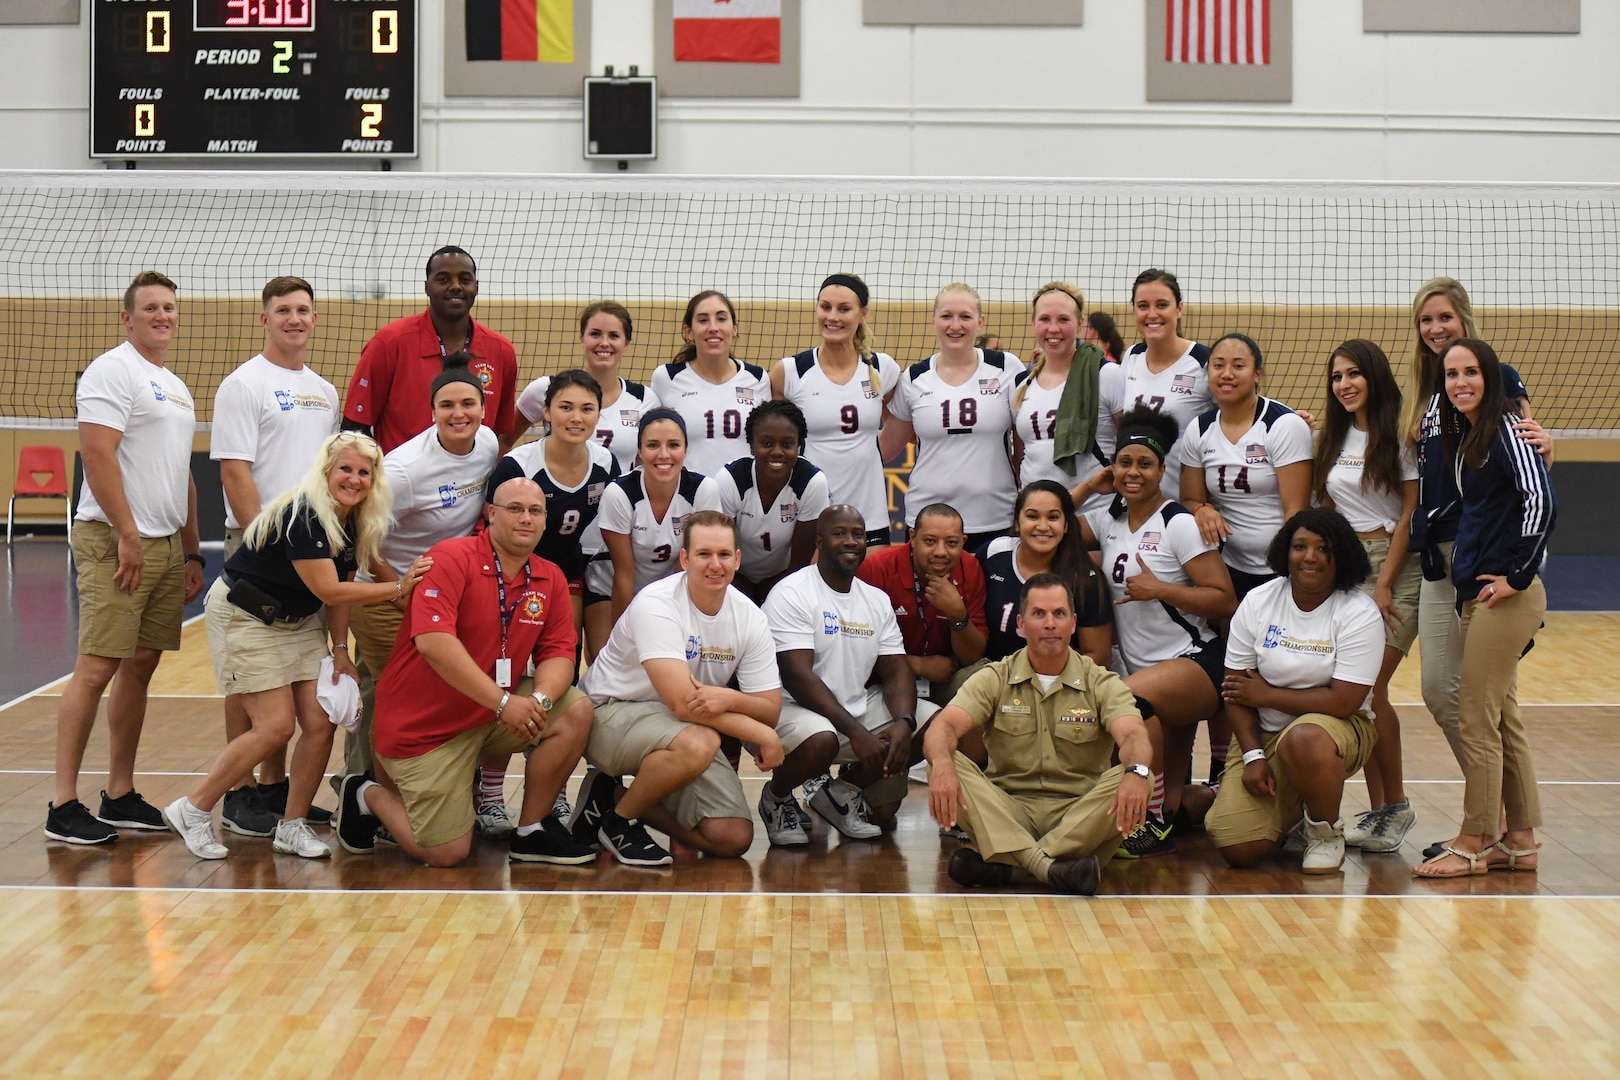 Naval Station Mayport Base Commander Navy Captain David Yoder joins the U.S. squad after USA defeated Germany in Match 6 of the 18th Conseil International du Sport Militaire (CISM) World Women's Military Volleyball Championship on 6 June 2017 at Naval Station Mayport, Florida. (Photo by Petty Officer 2nd Class Timothy Schumaker, NPASE East).